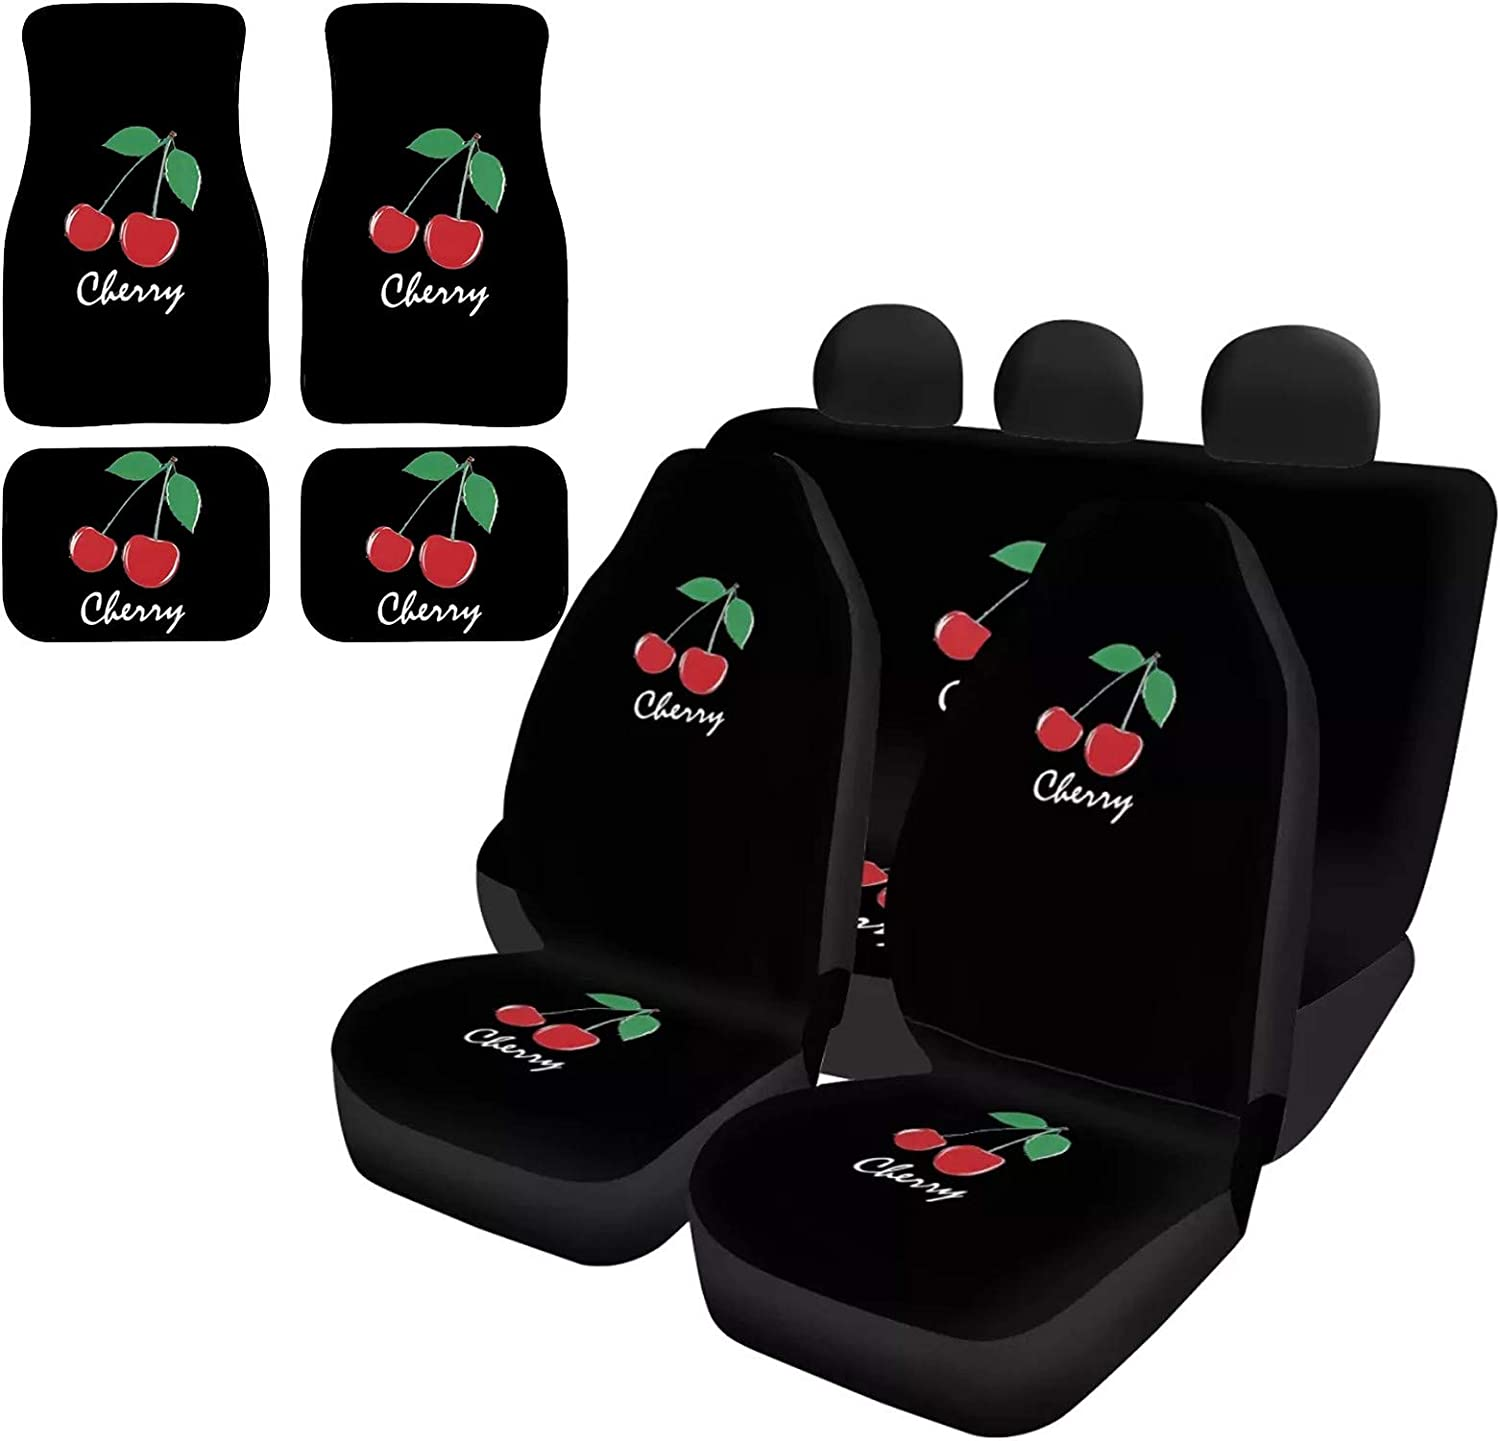 UZZUHI Fashion 40% OFF Cheap Sale Cherry Black Car Seat Covers Fron Denver Mall with Duty Heavy